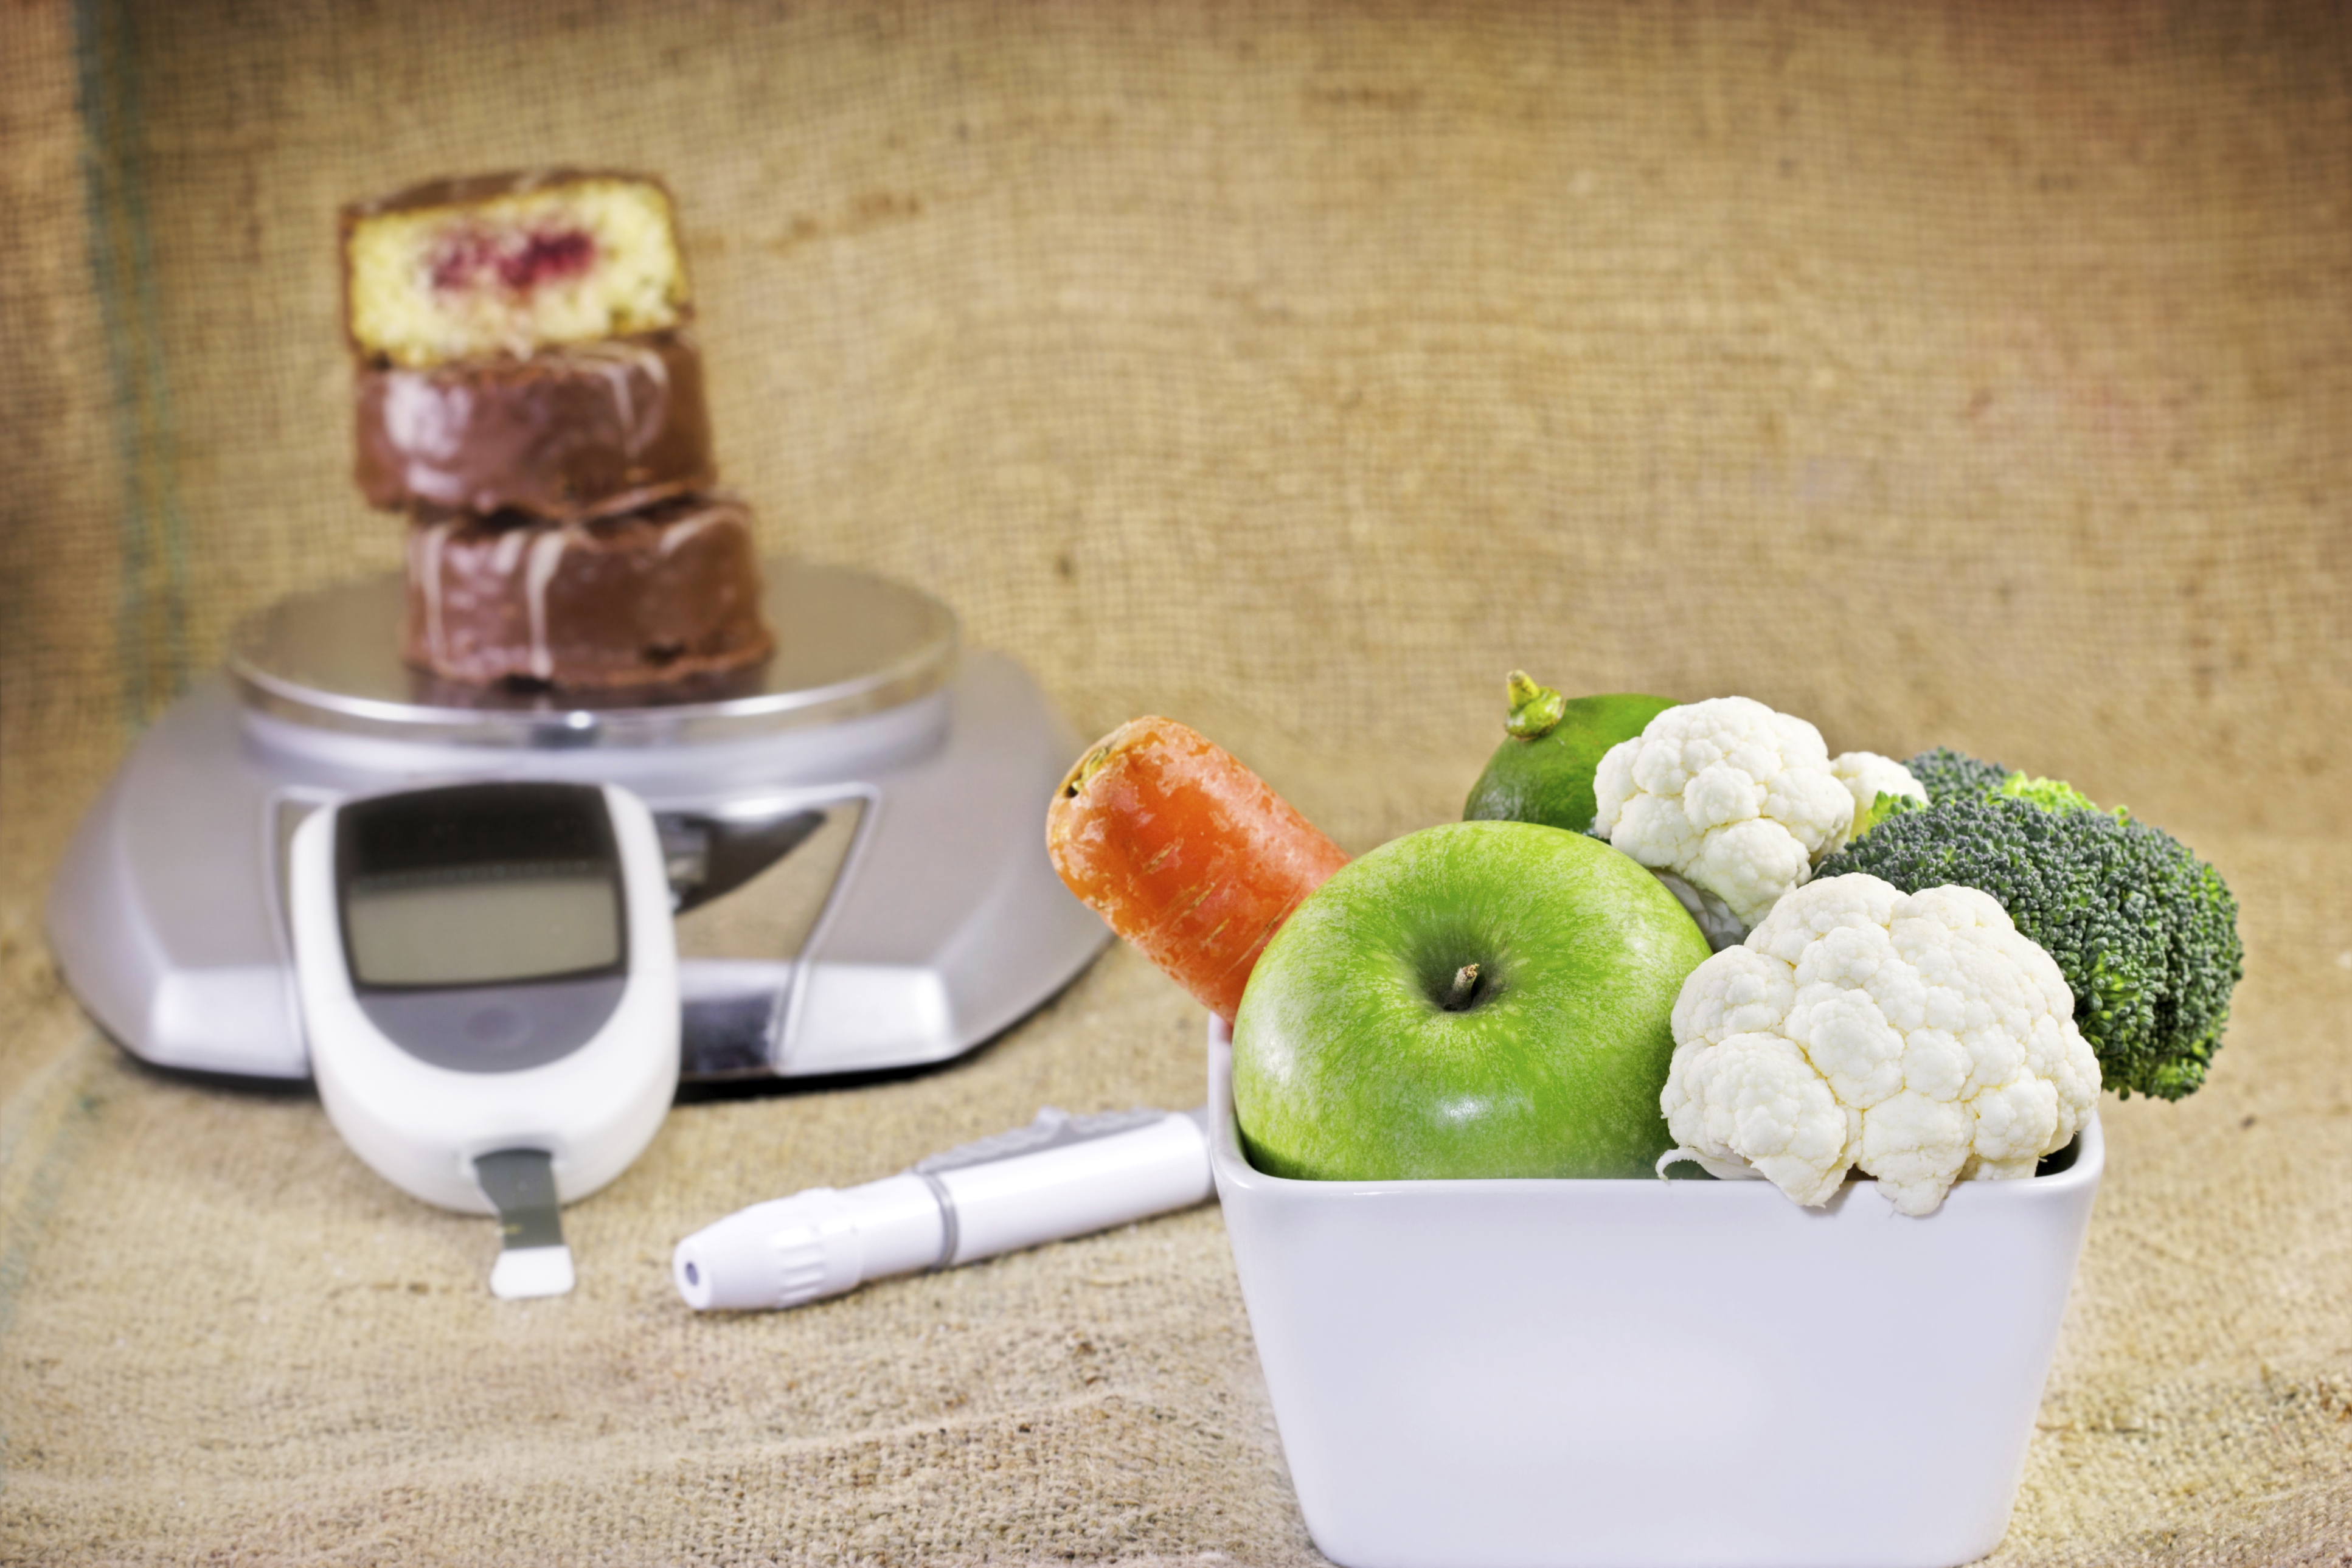 A food for fighting diabetes and helping you lose weight